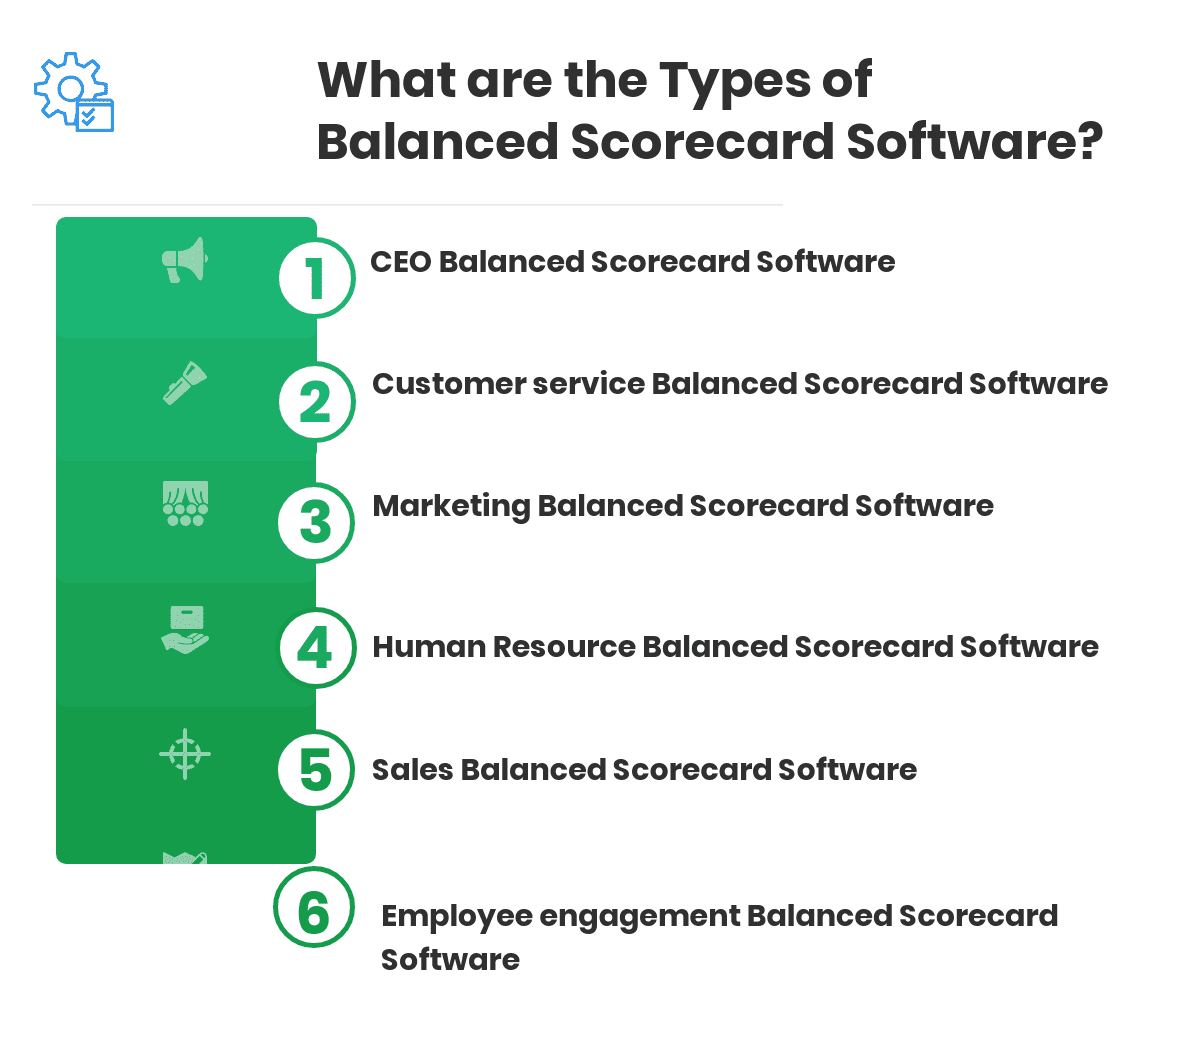 What are the Types of Balanced Scorecard Software?